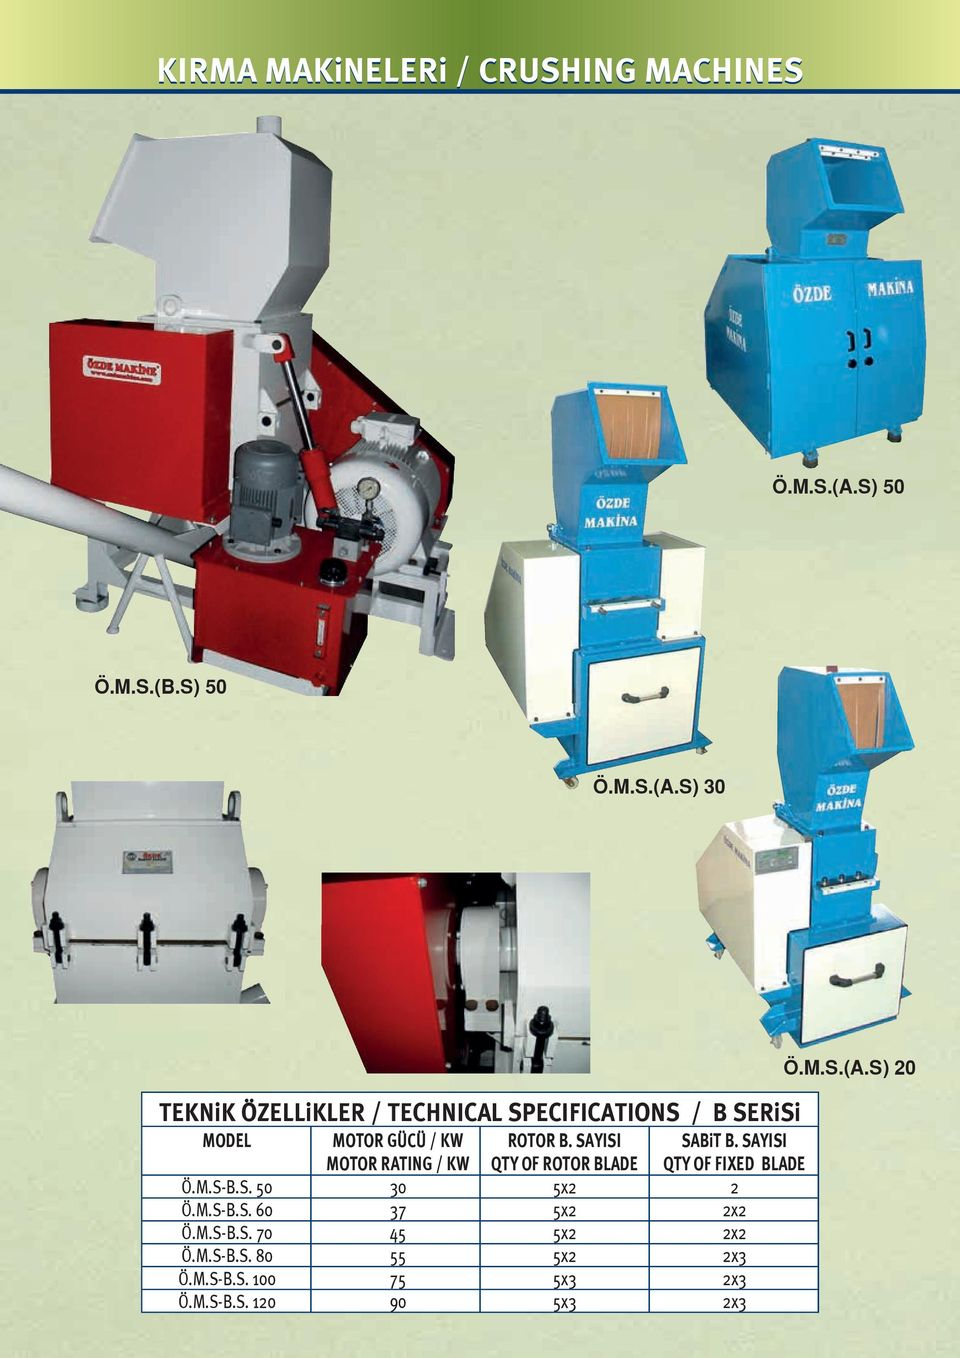 S) 30 TEKNiK ÖZELLiKLER / TECHNICAL SPECIFICATIONS / B SERiSi MODEL MOTOR GÜCÜ / KW MOTOR RATING / KW